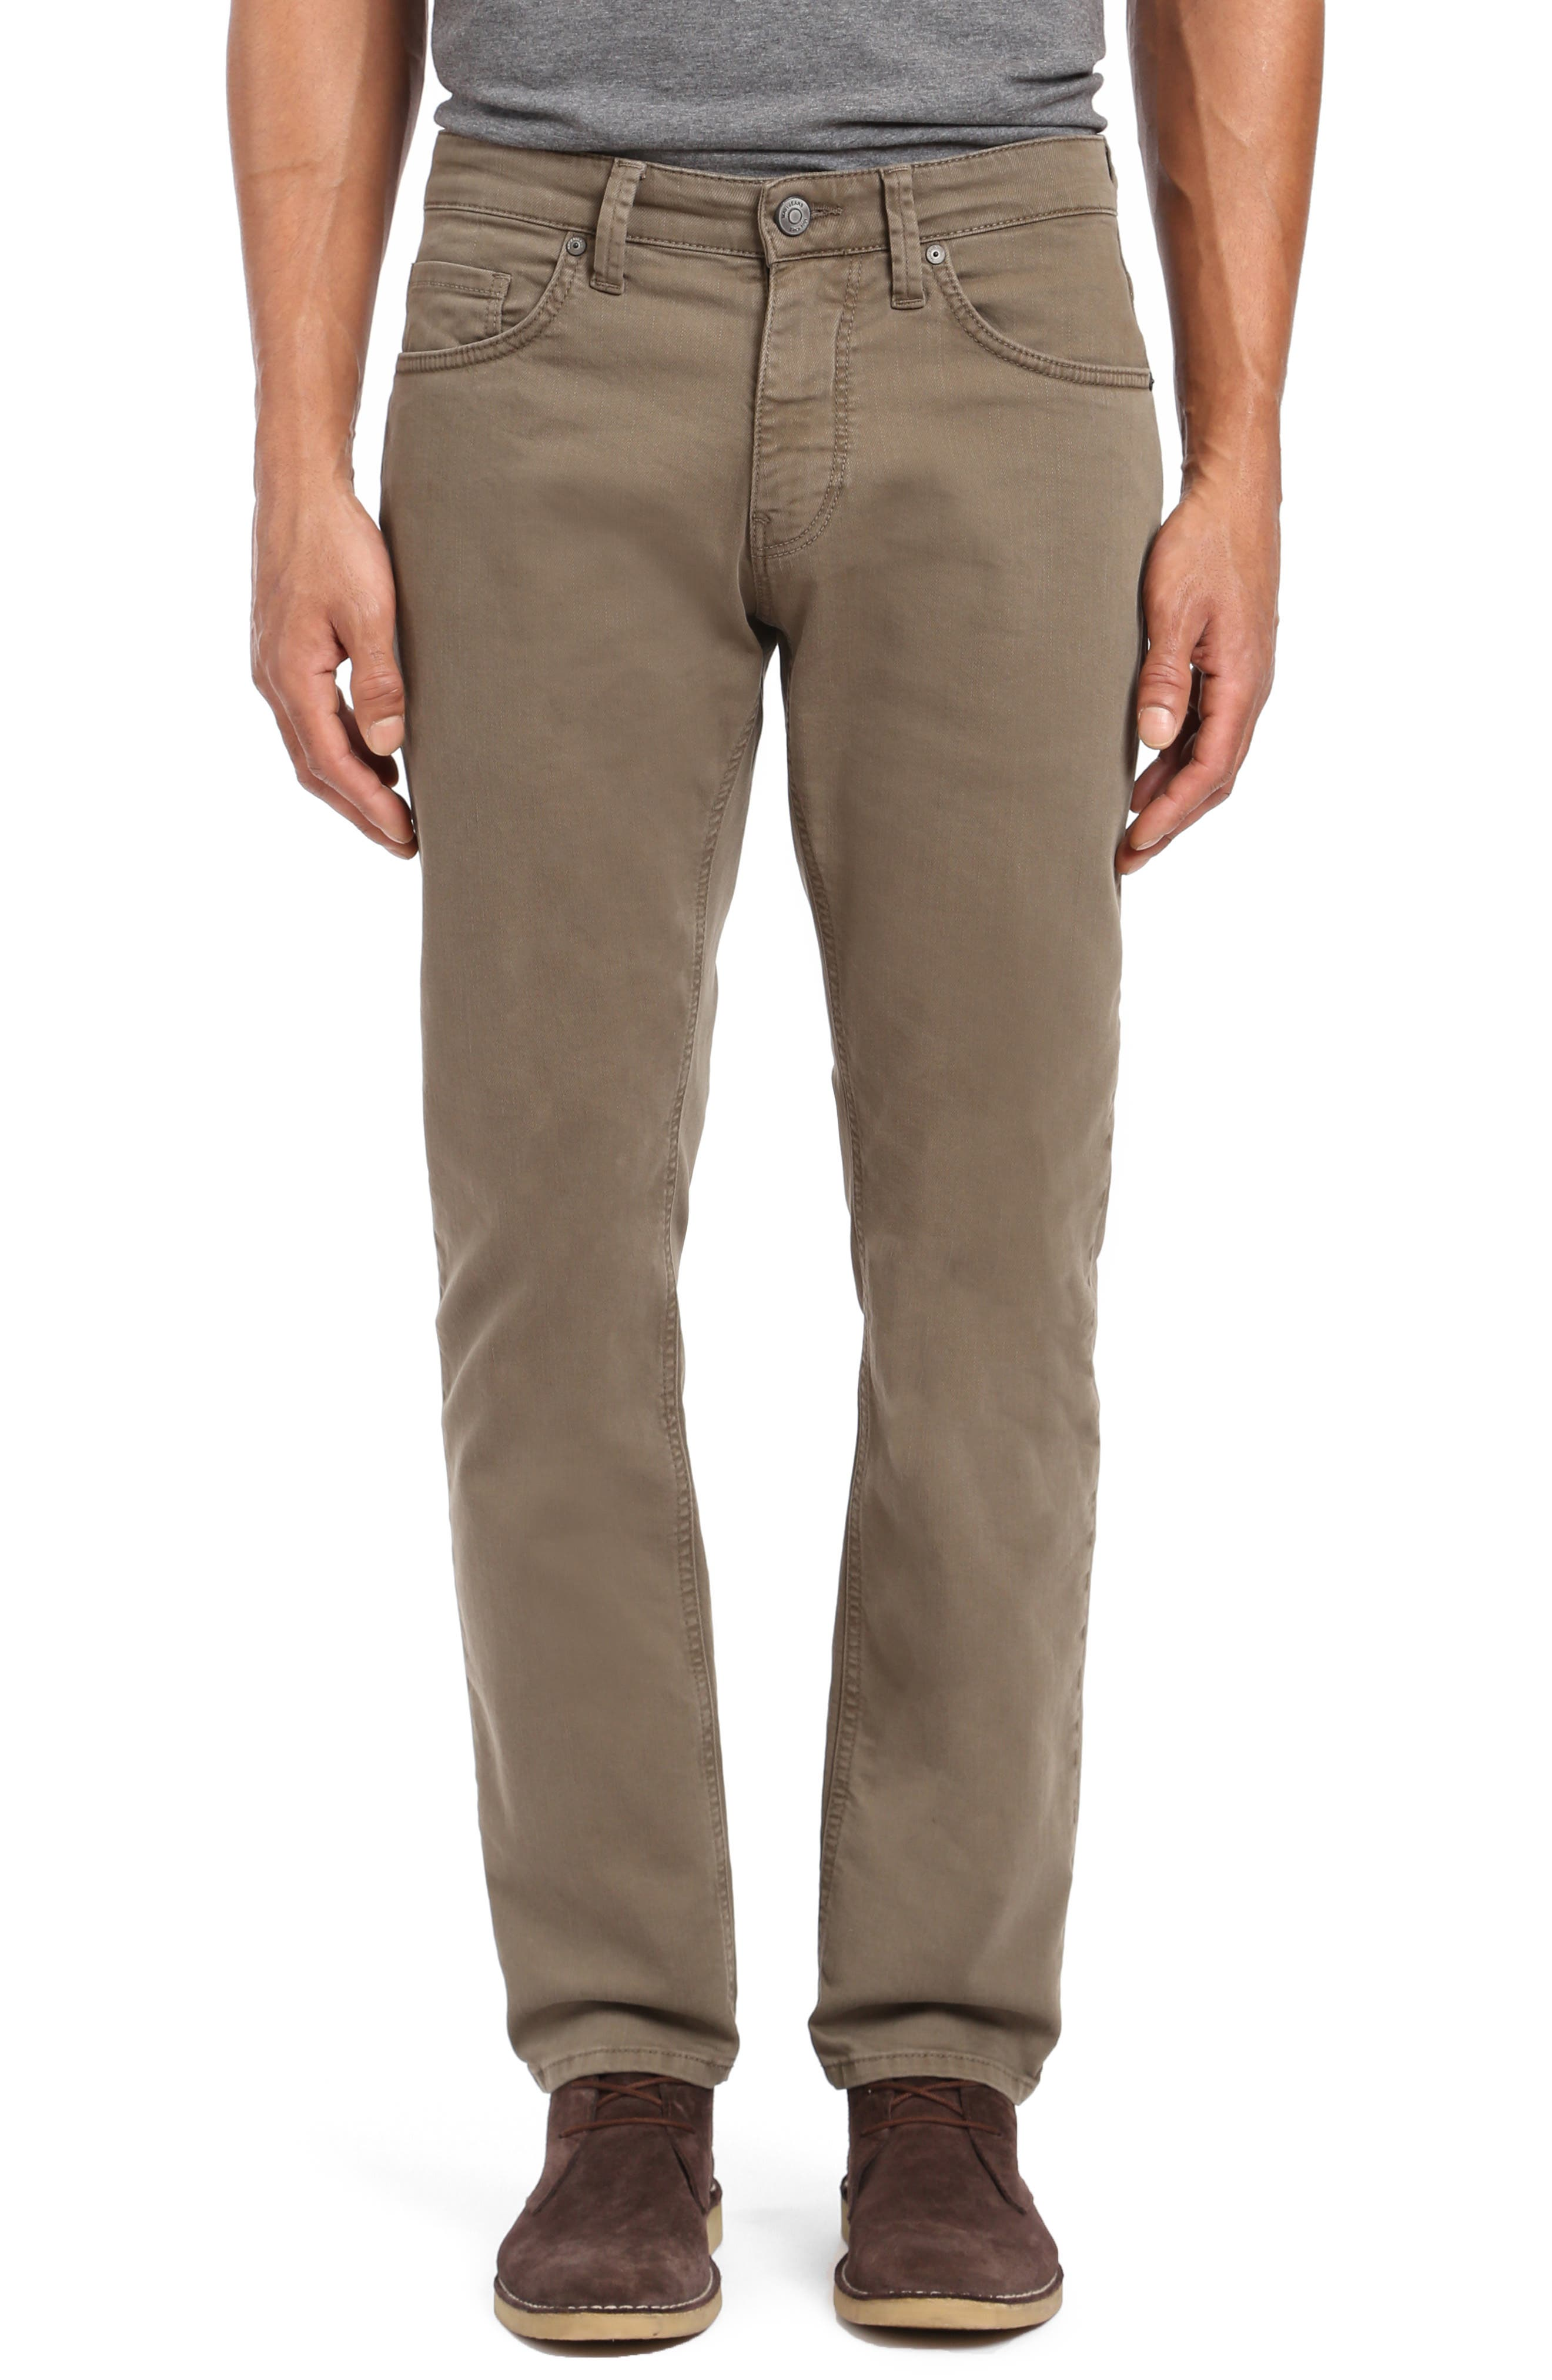 Zach Straight Leg Jeans,                         Main,                         color, KHAKI WASHED COMFORT